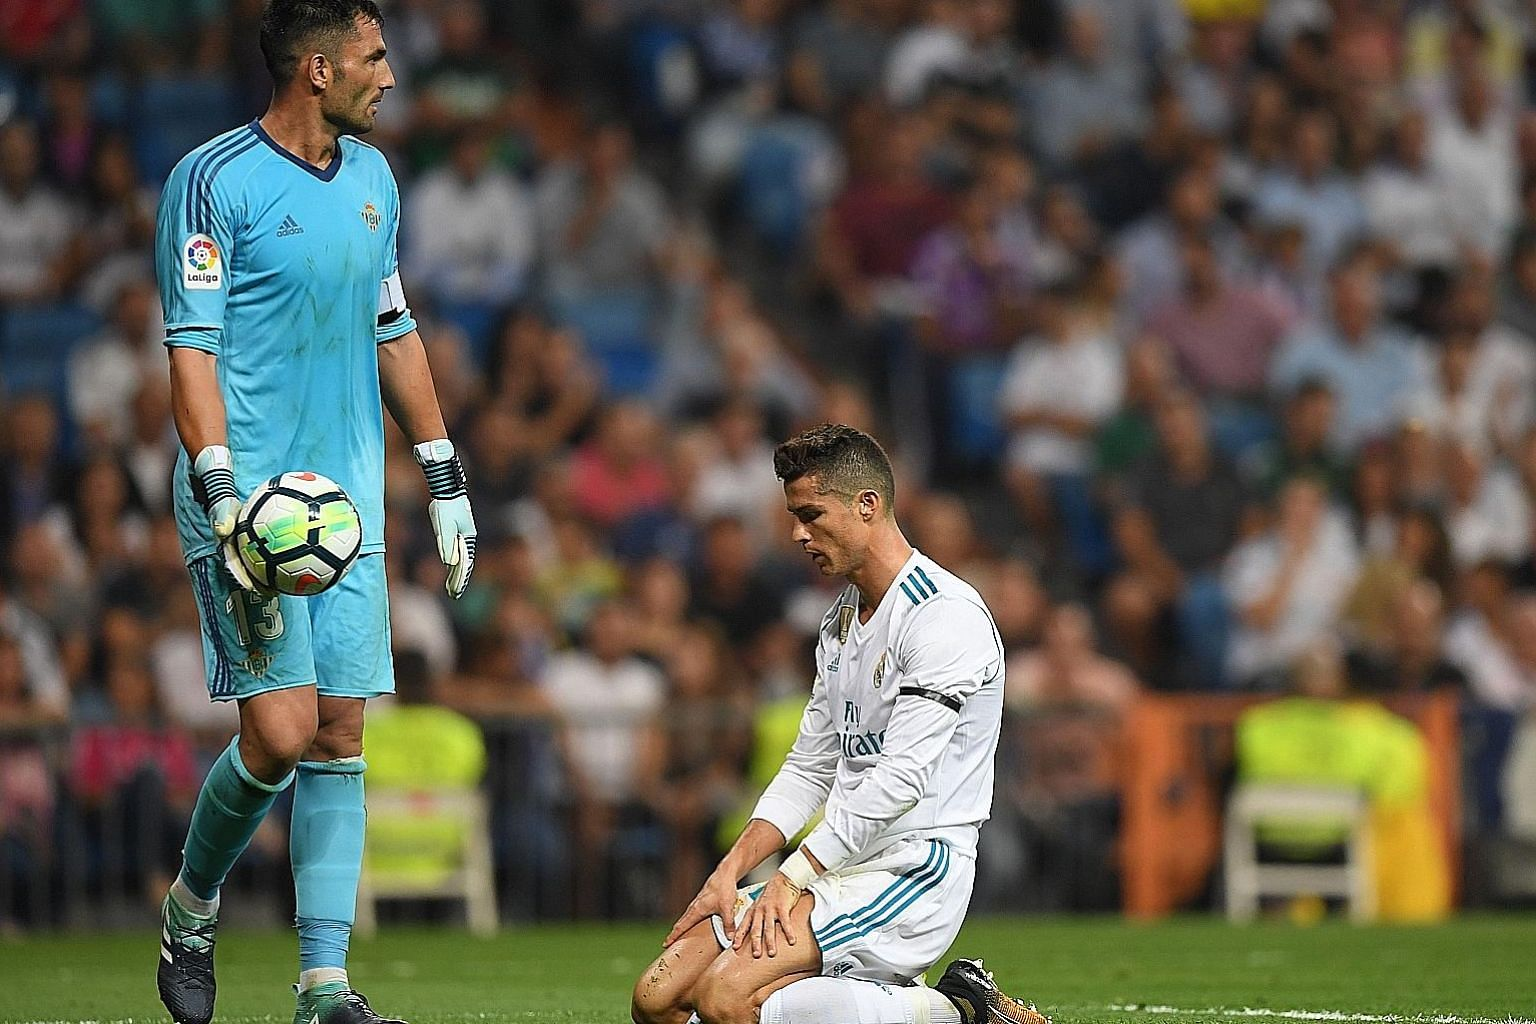 Portuguese star Cristiano Ronaldo is despondent after failing to beat Real Betis goalkeeper Antonio Adan in Real Madrid's 0-1 loss at the Santiago Bernabeu on Wednesday. It was the first time in 74 games that Real, who are a lowly eighth in the LaLig